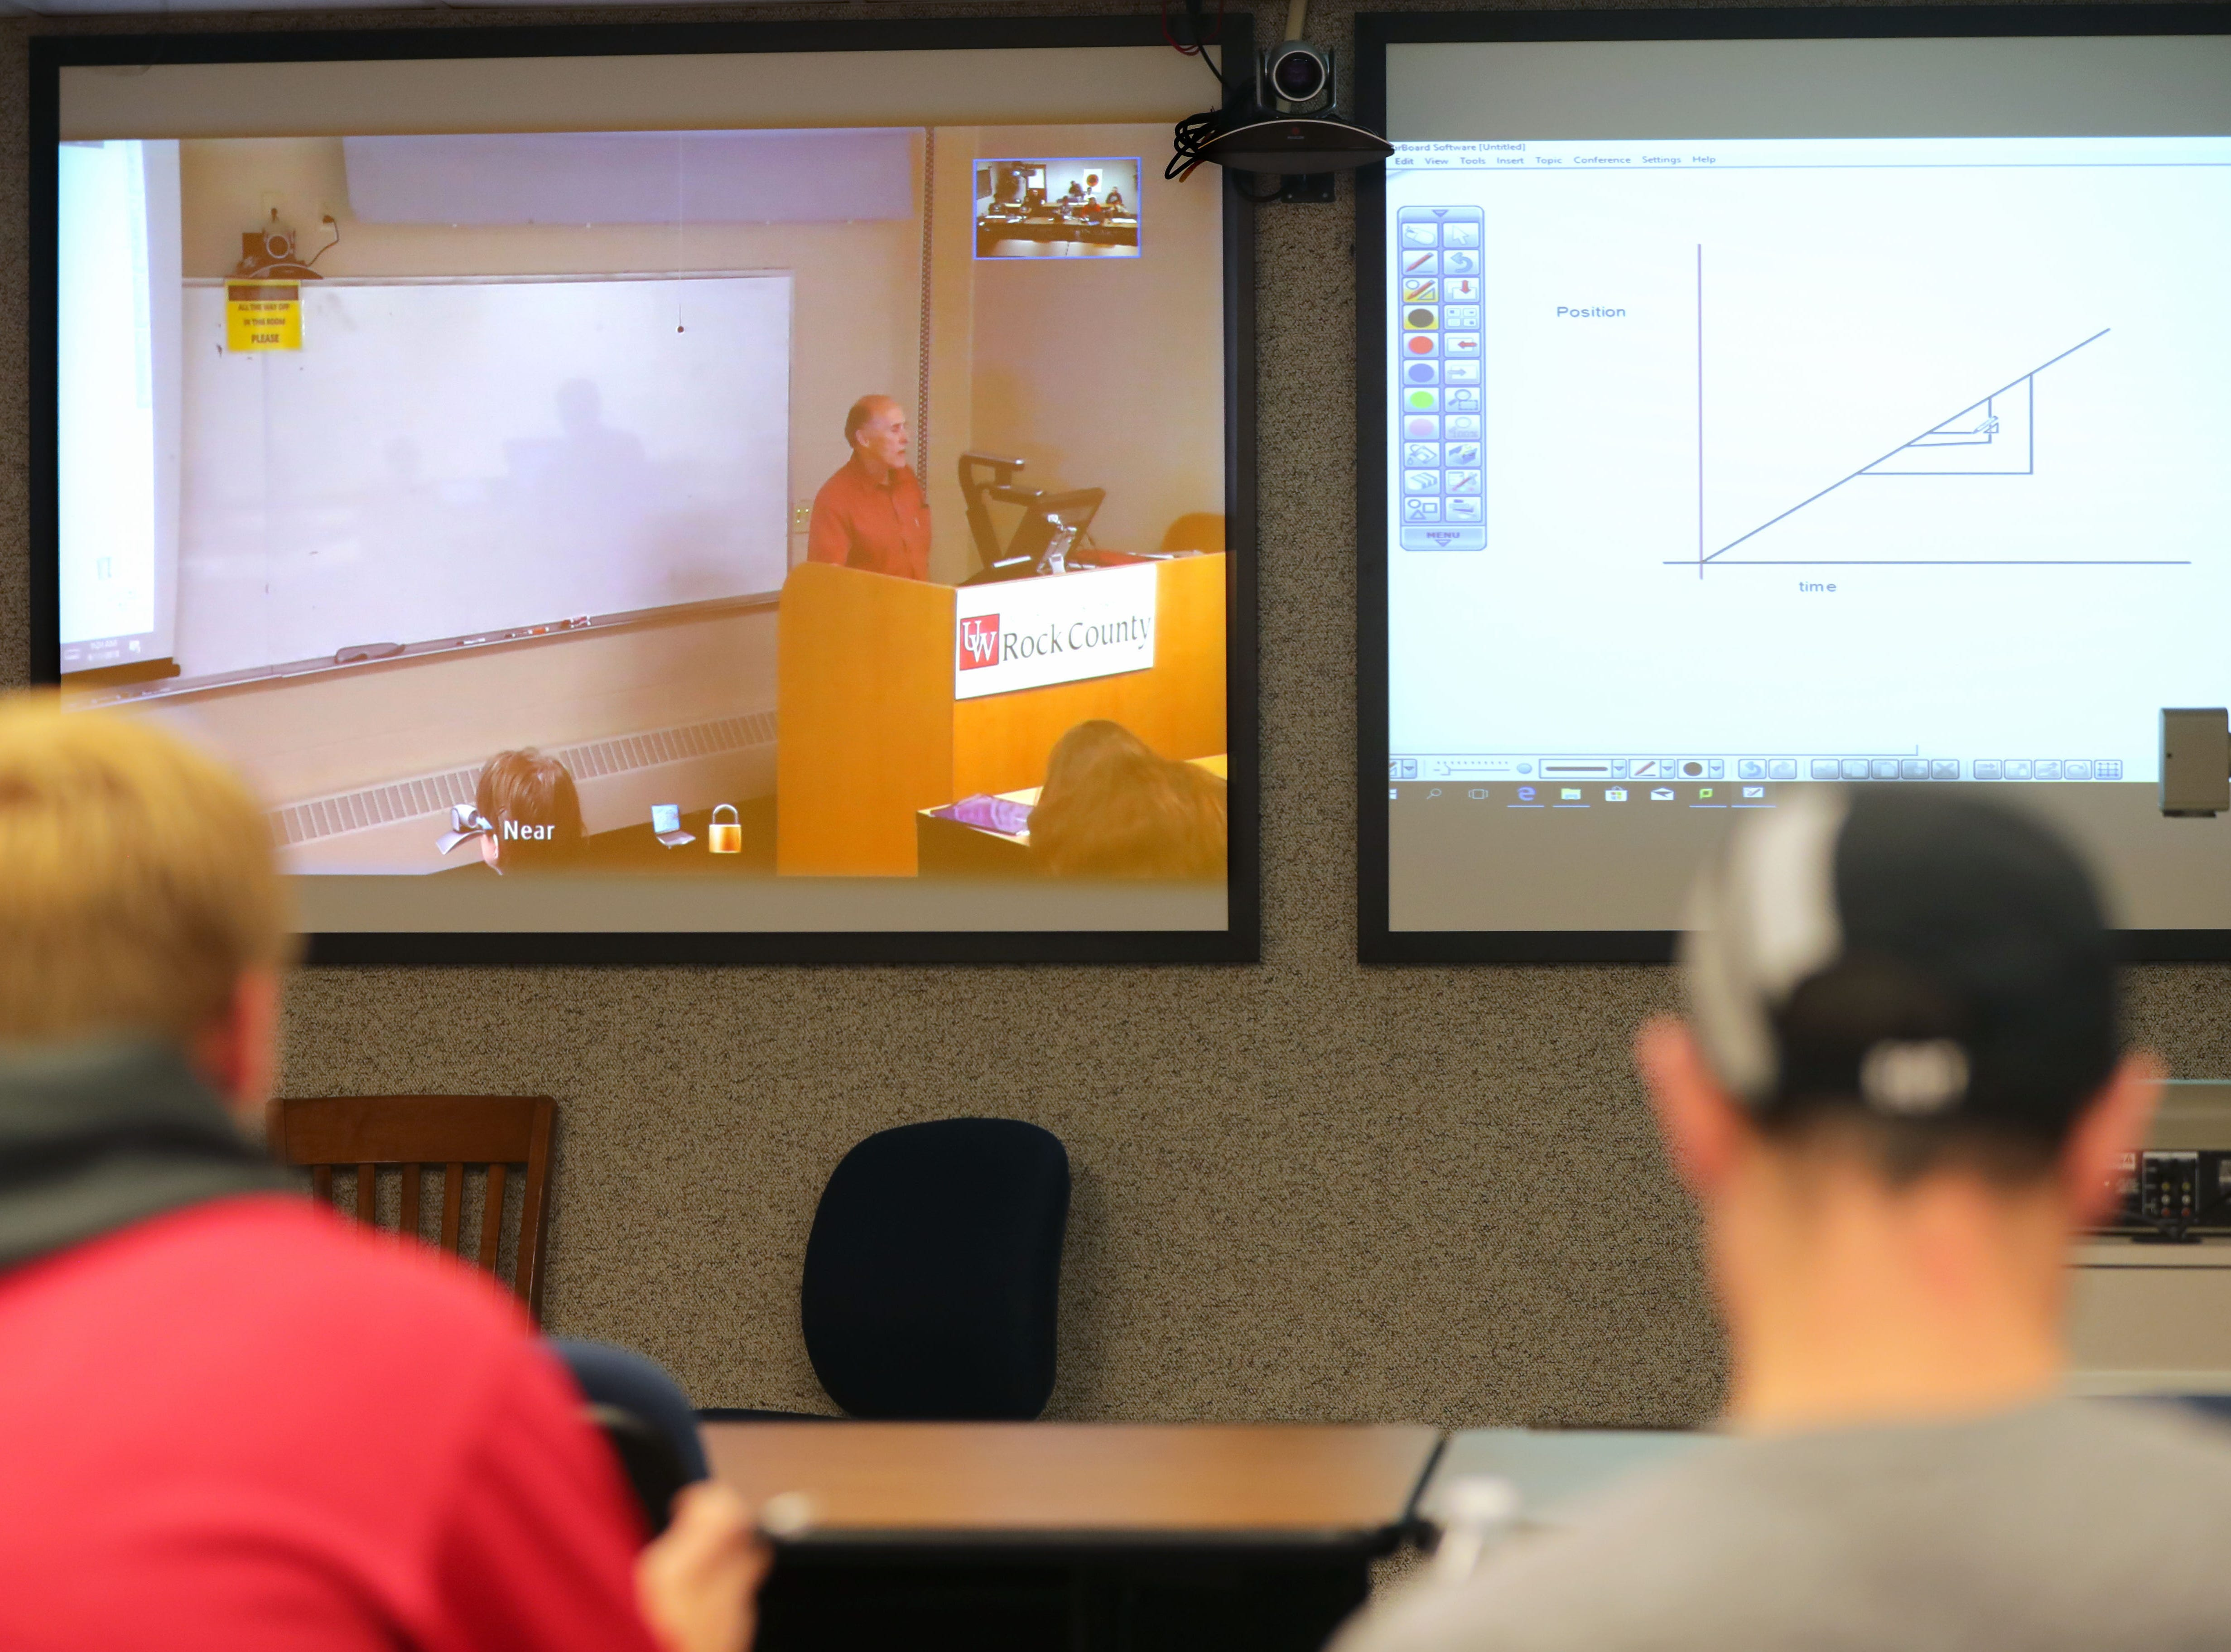 University of Wisconsin-Green Bay, Sheboygan Campus students attend a  physics class being taught remotely via a video conference by Thomas Hall from the University of Wisconsin Rock County campus instructed by Thomas Hall from the University of Wisconsin-Whitewater at Rock County.